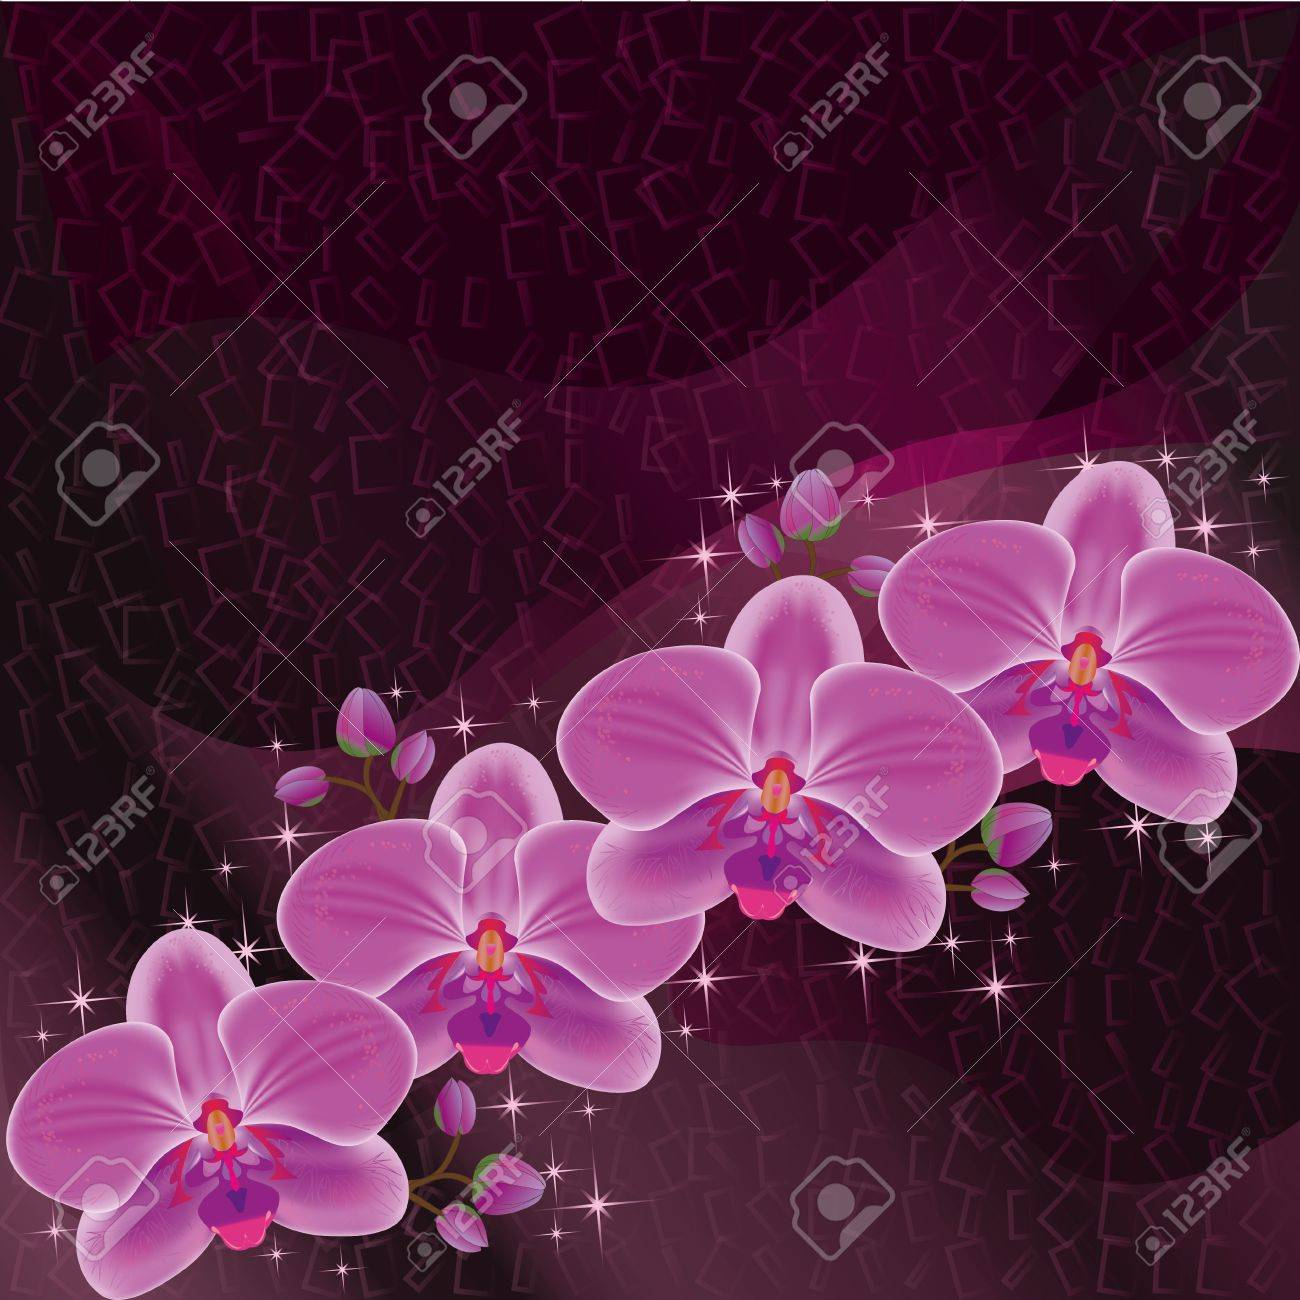 Invitation or greeting card dark red with exotic flower purple orchid, luxury floral background with decorative elements Stock Vector - 14063901